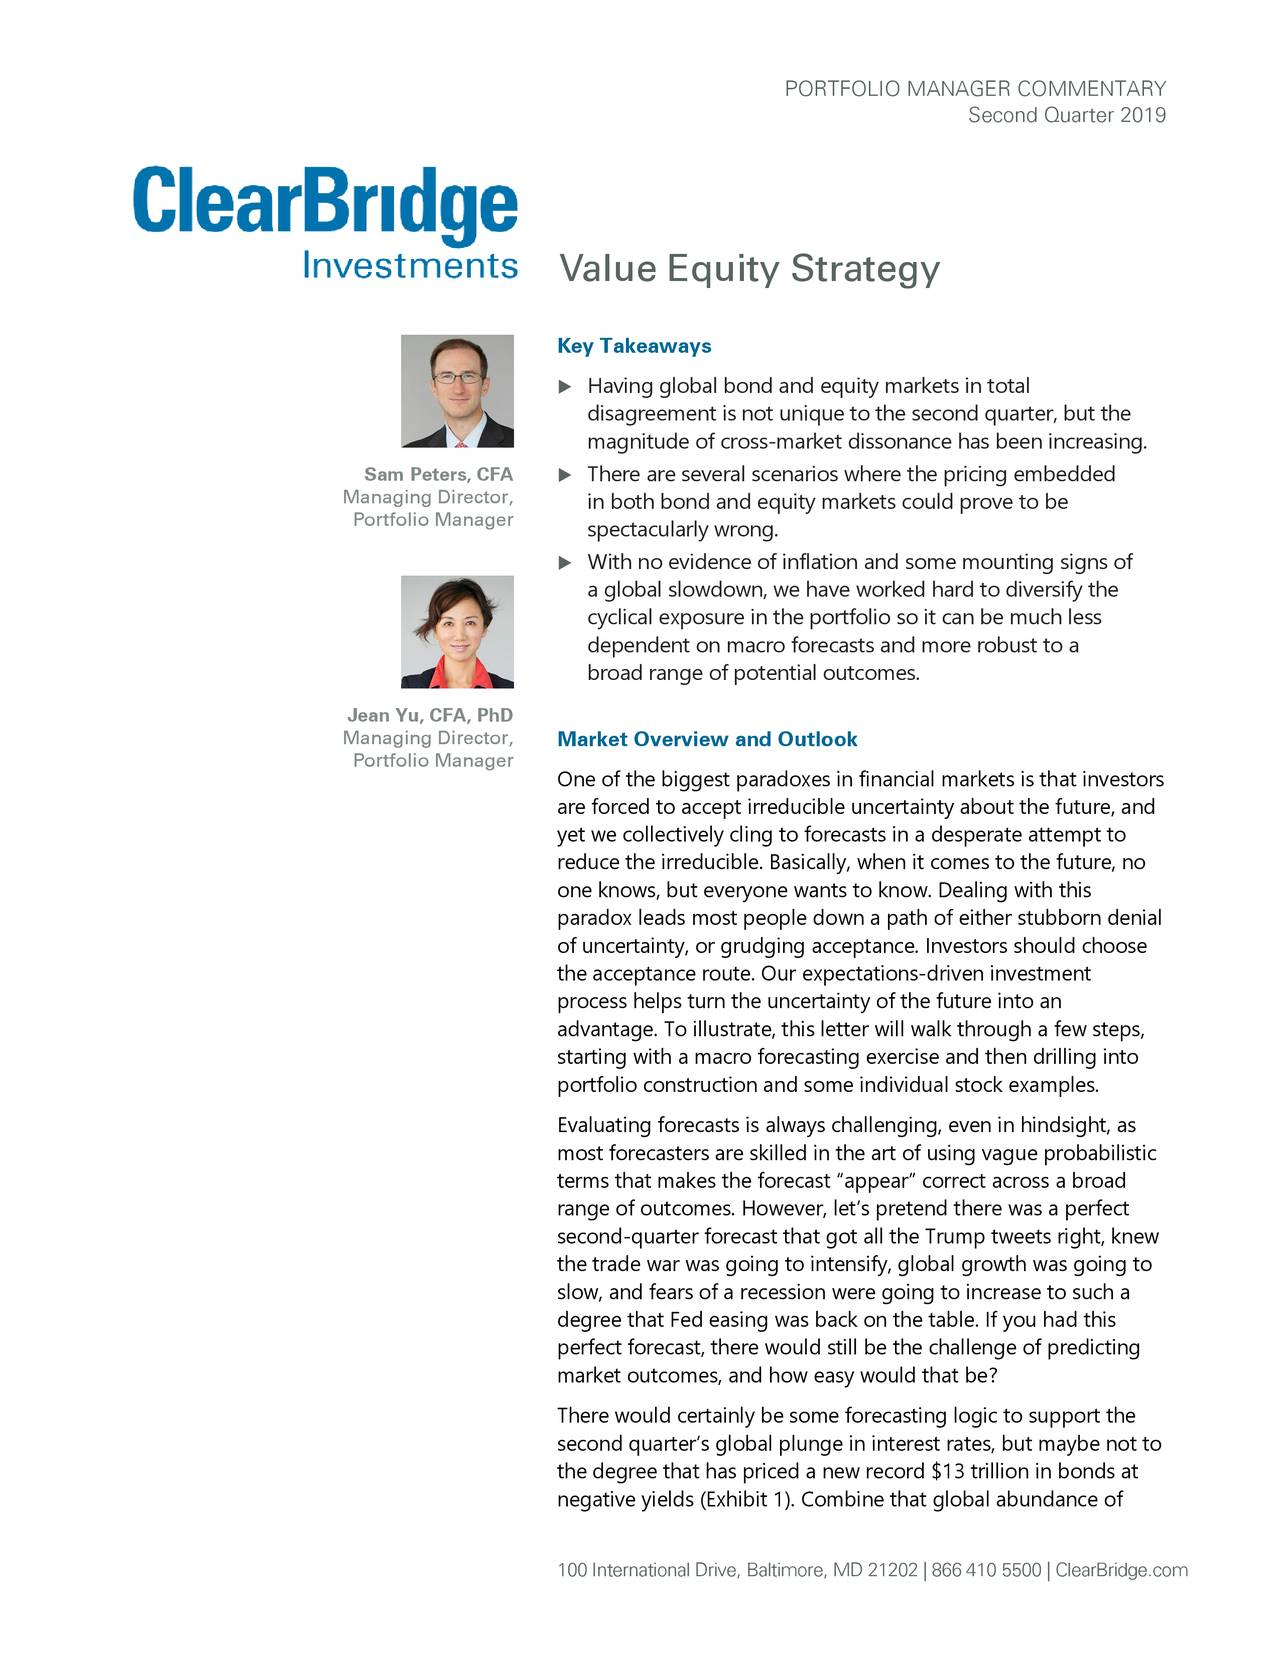 ClearBridge Value Equity Strategy Portfolio Manager Commentary Q2 2019